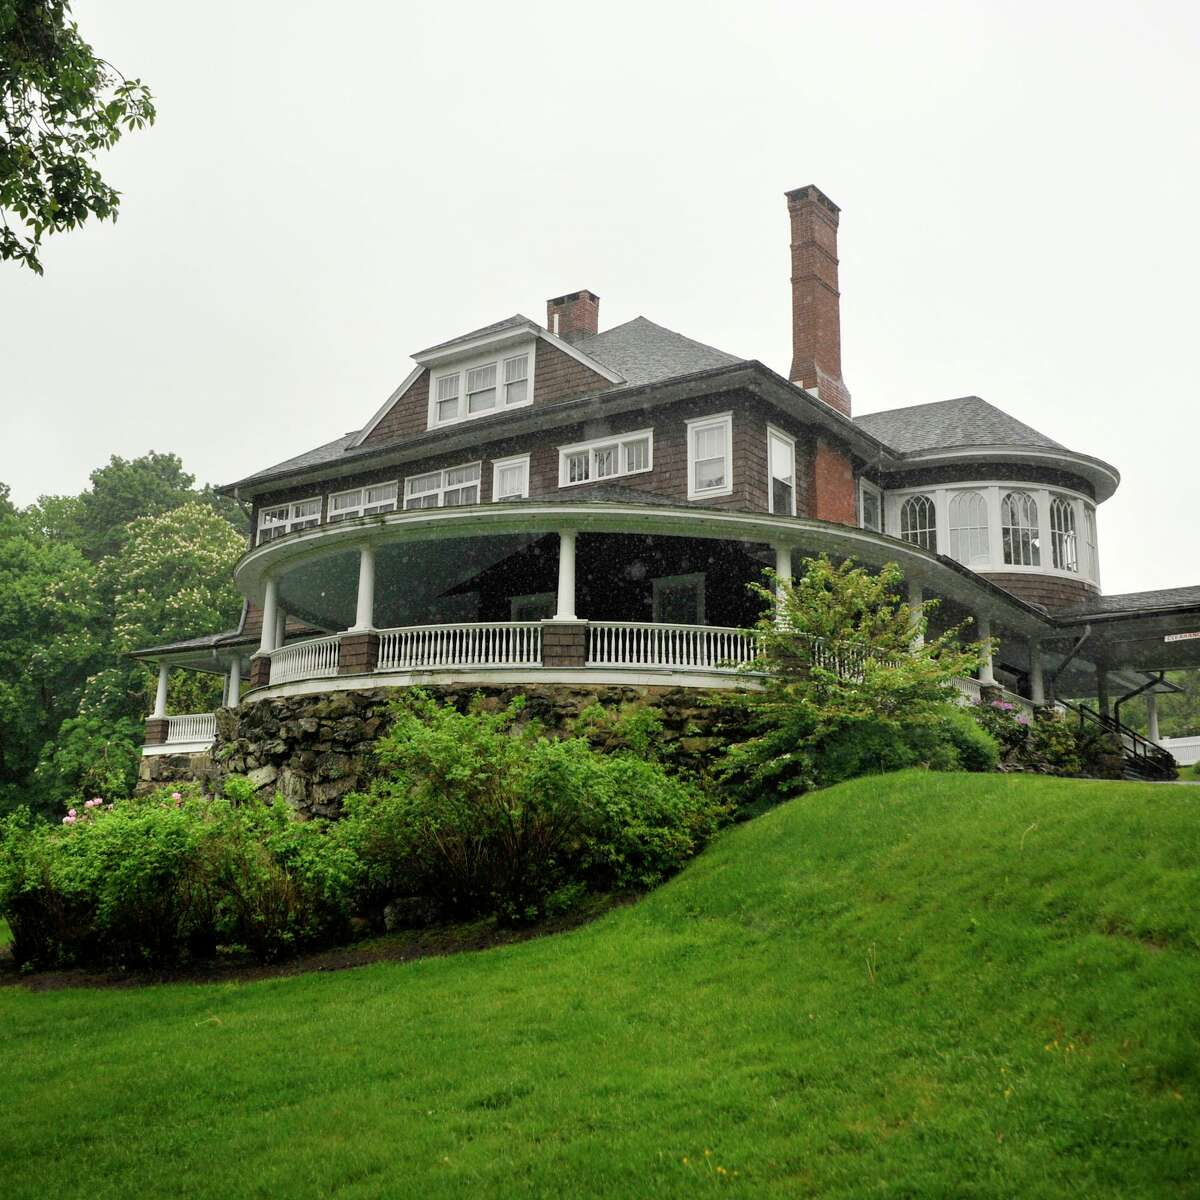 Tarrywile Mansion in Danbury. Photographed on Tuesday, May 15, 2012.